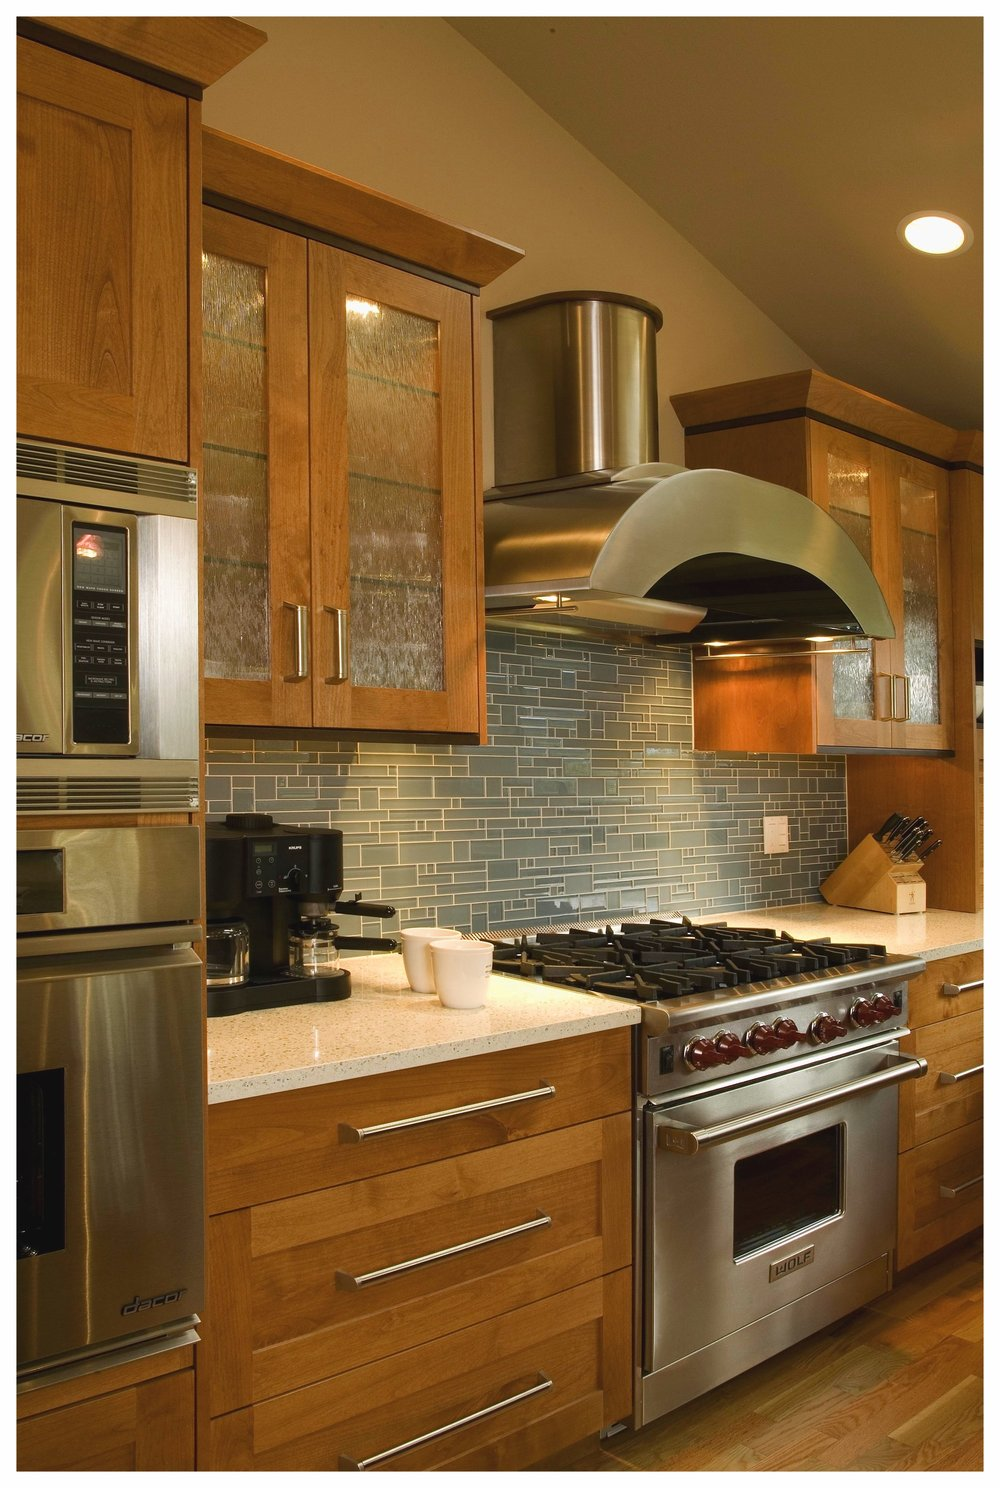 Bellevue Wilburton Park Transitional Kitchen 5.jpg